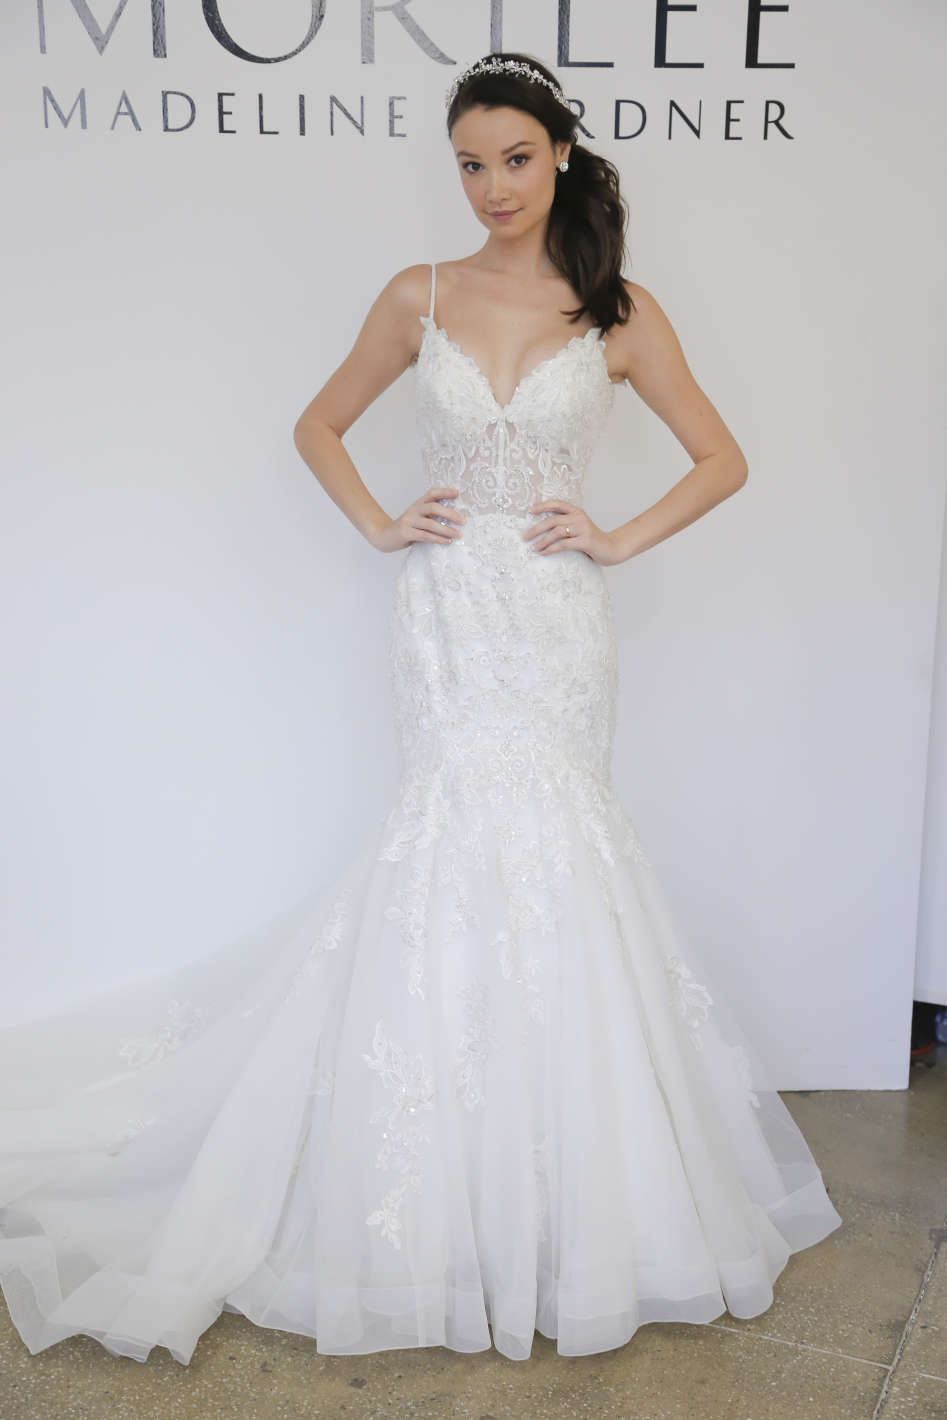 Awesome Las Vegas Wedding Dress Ideas - Styles & Ideas 2018 - sperr.us